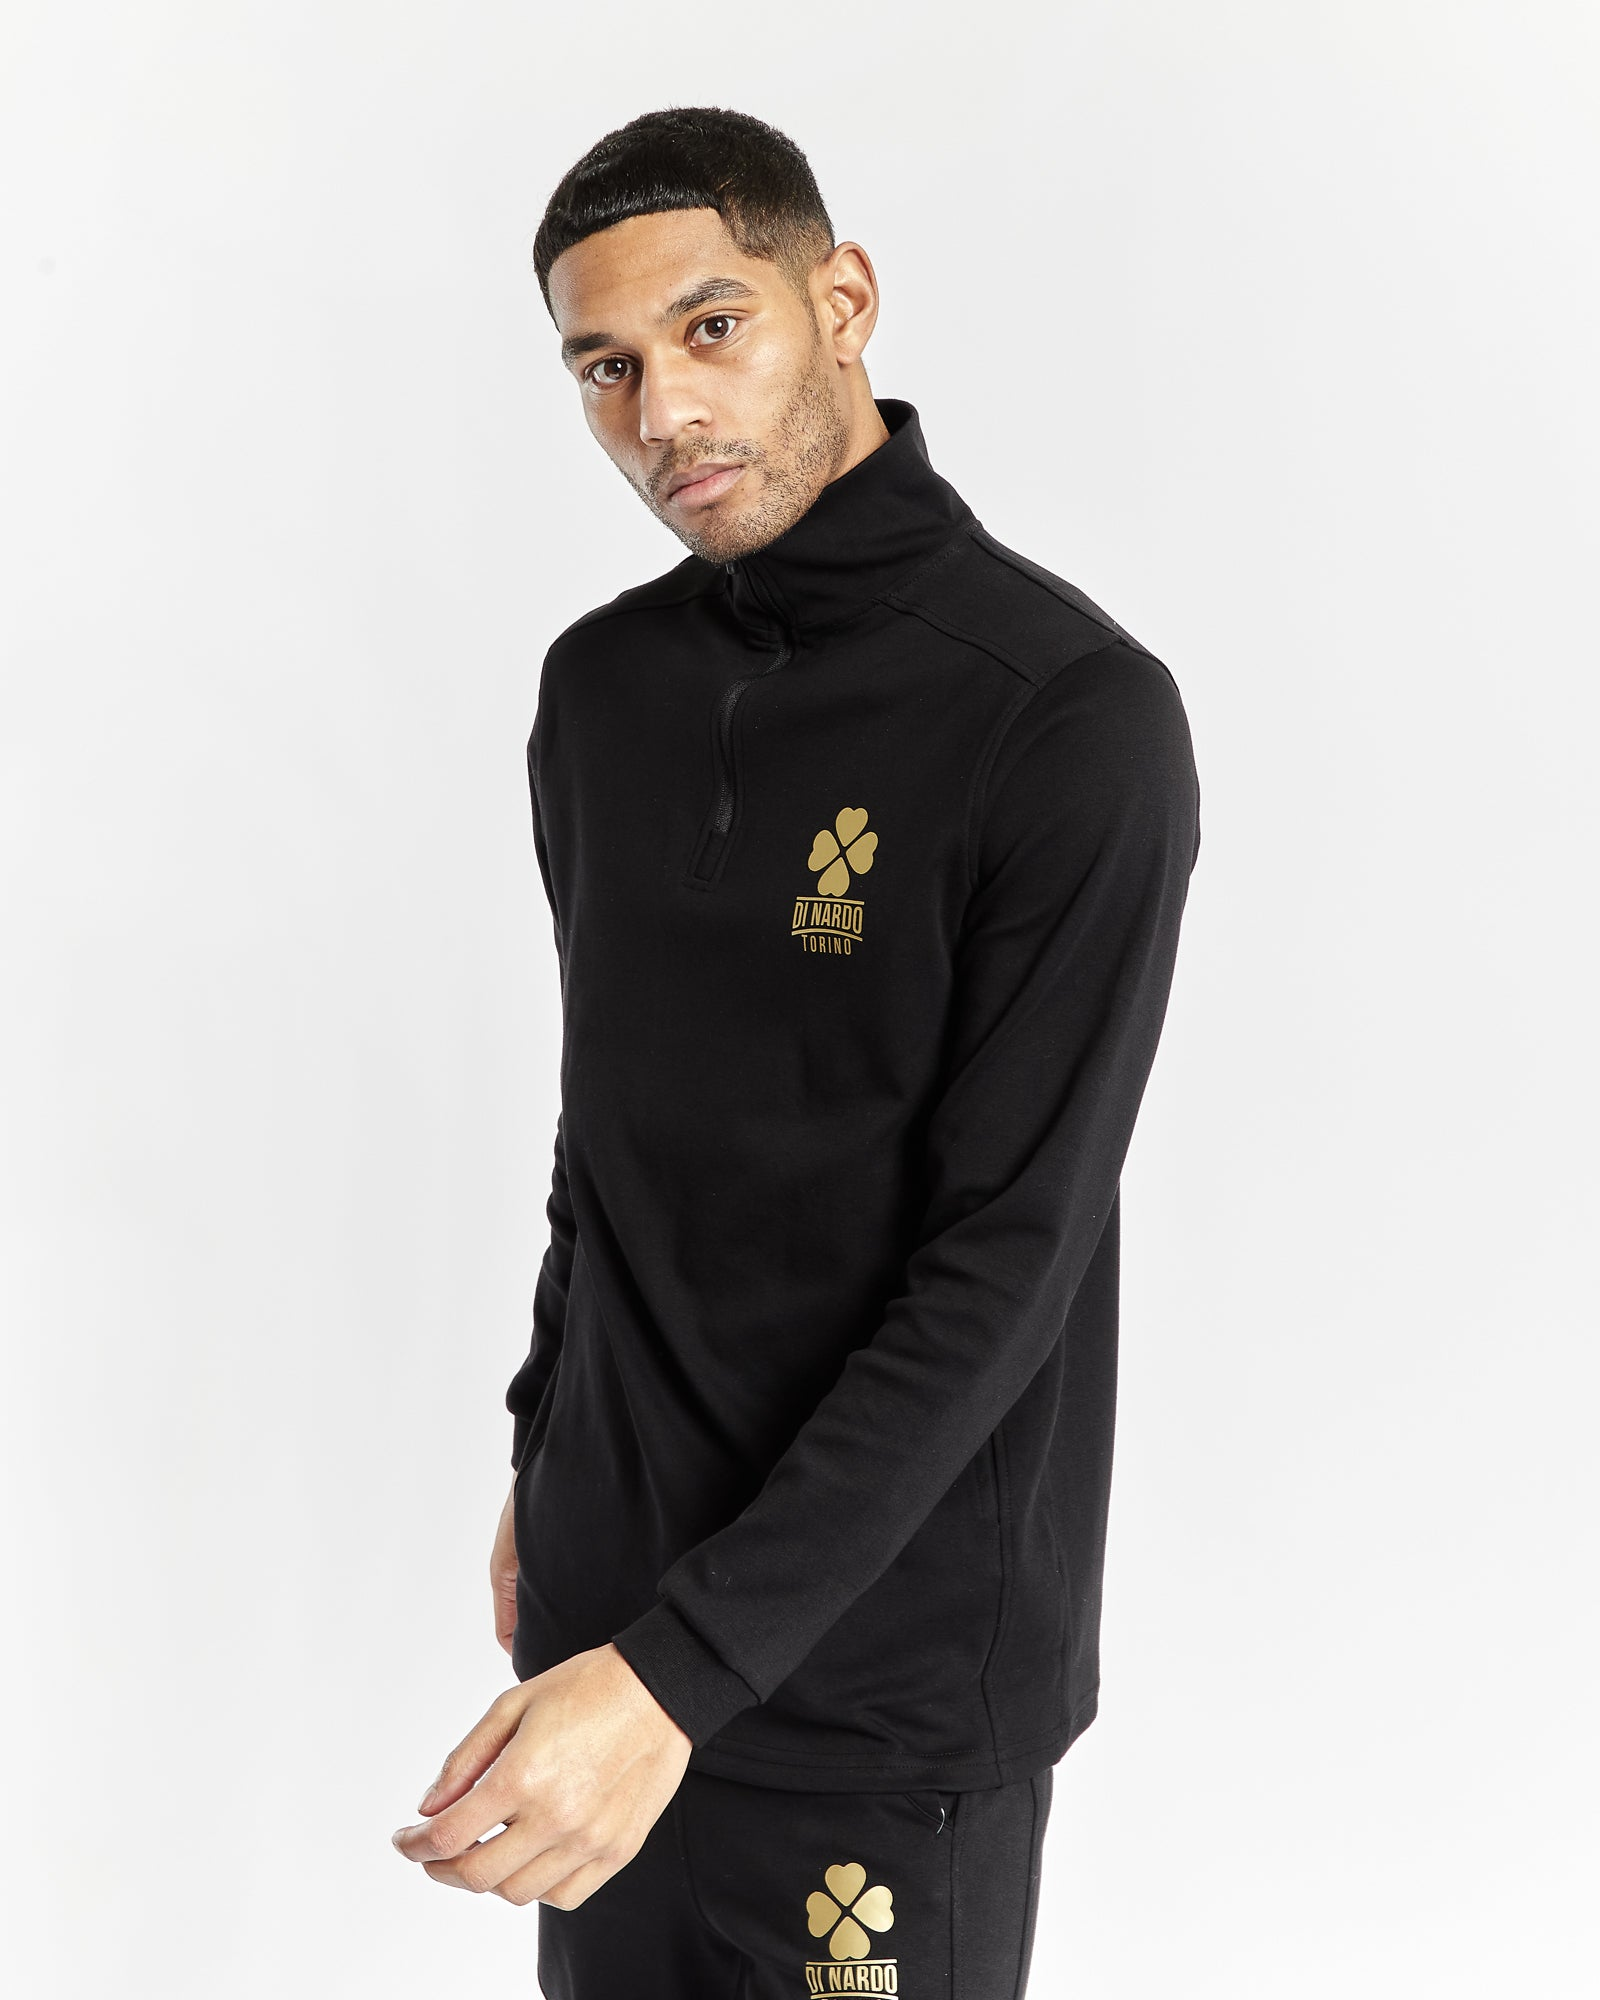 Di Nardo Men's Black Sweatshirt